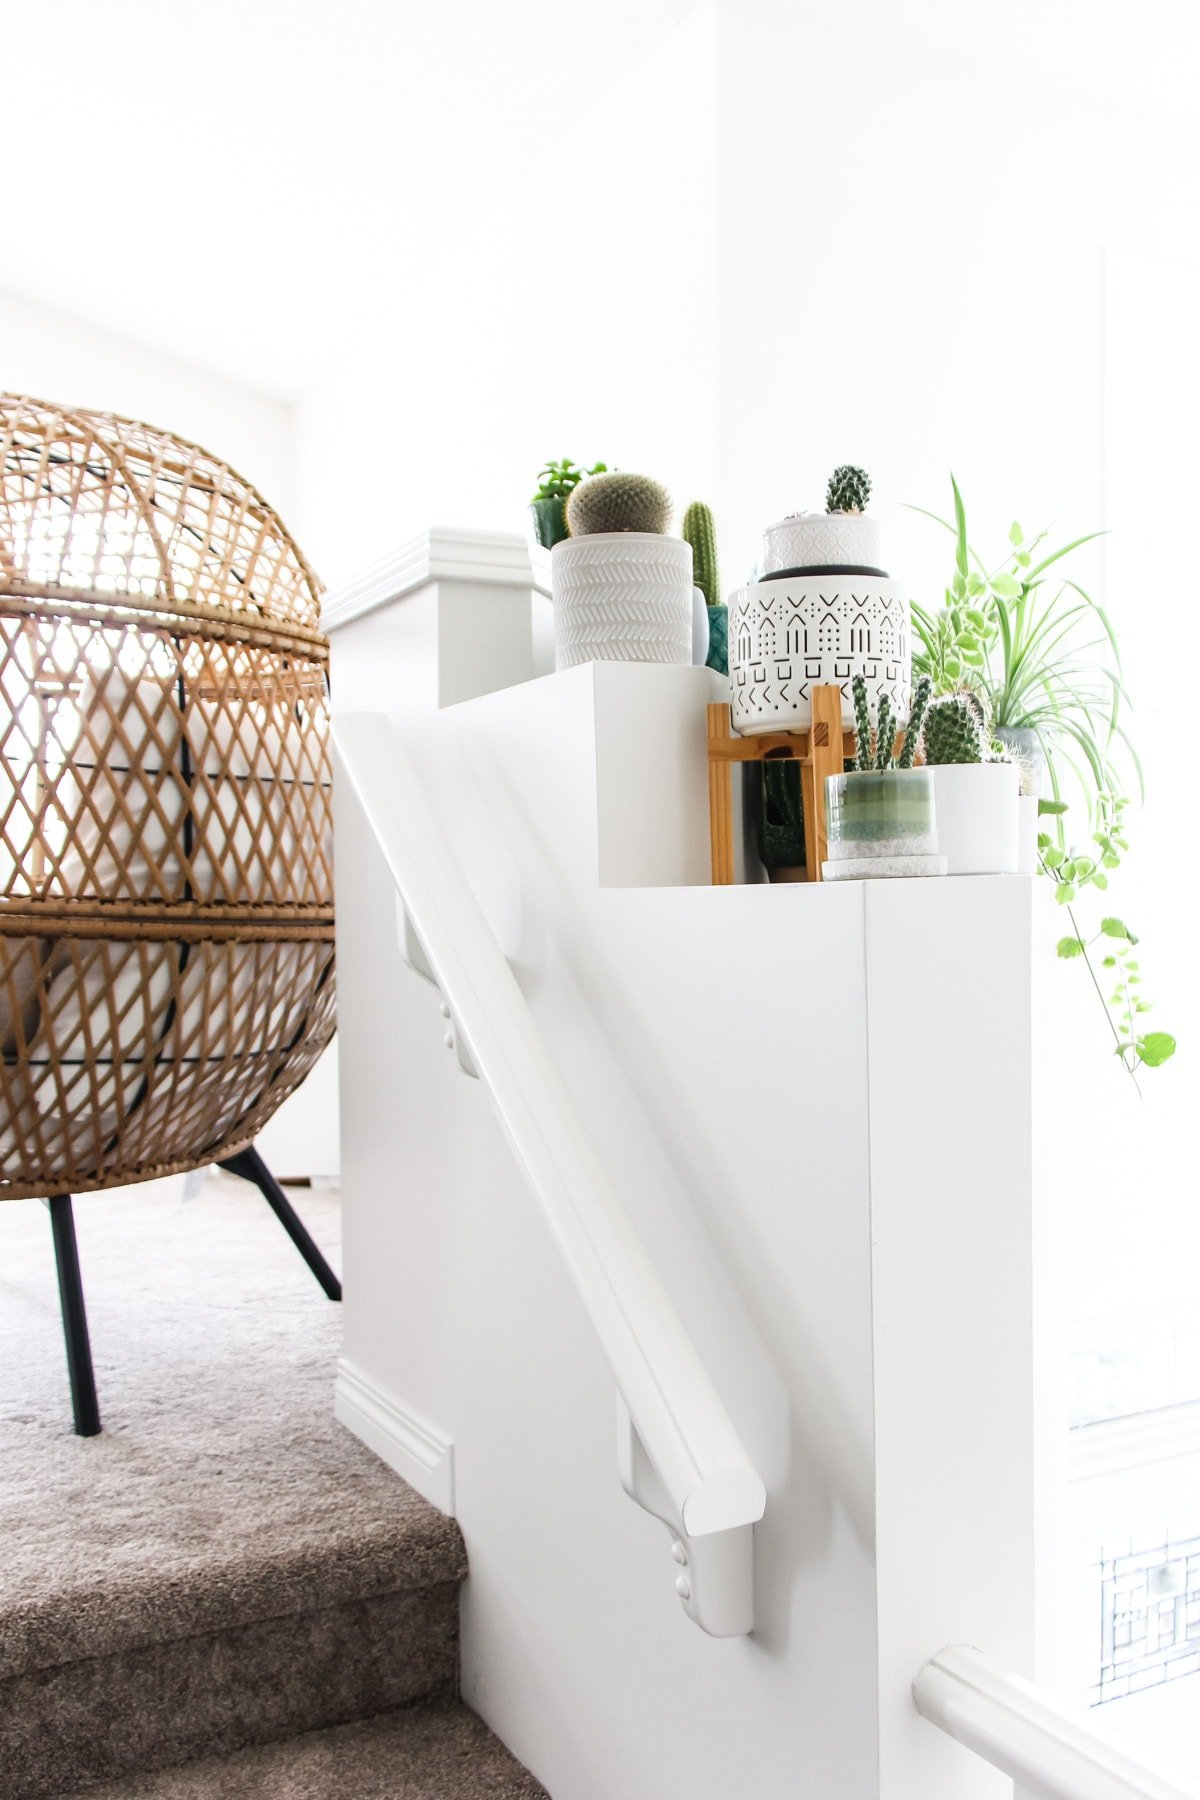 a white feature wall shelf filled with plants. in the background is a wicker chair